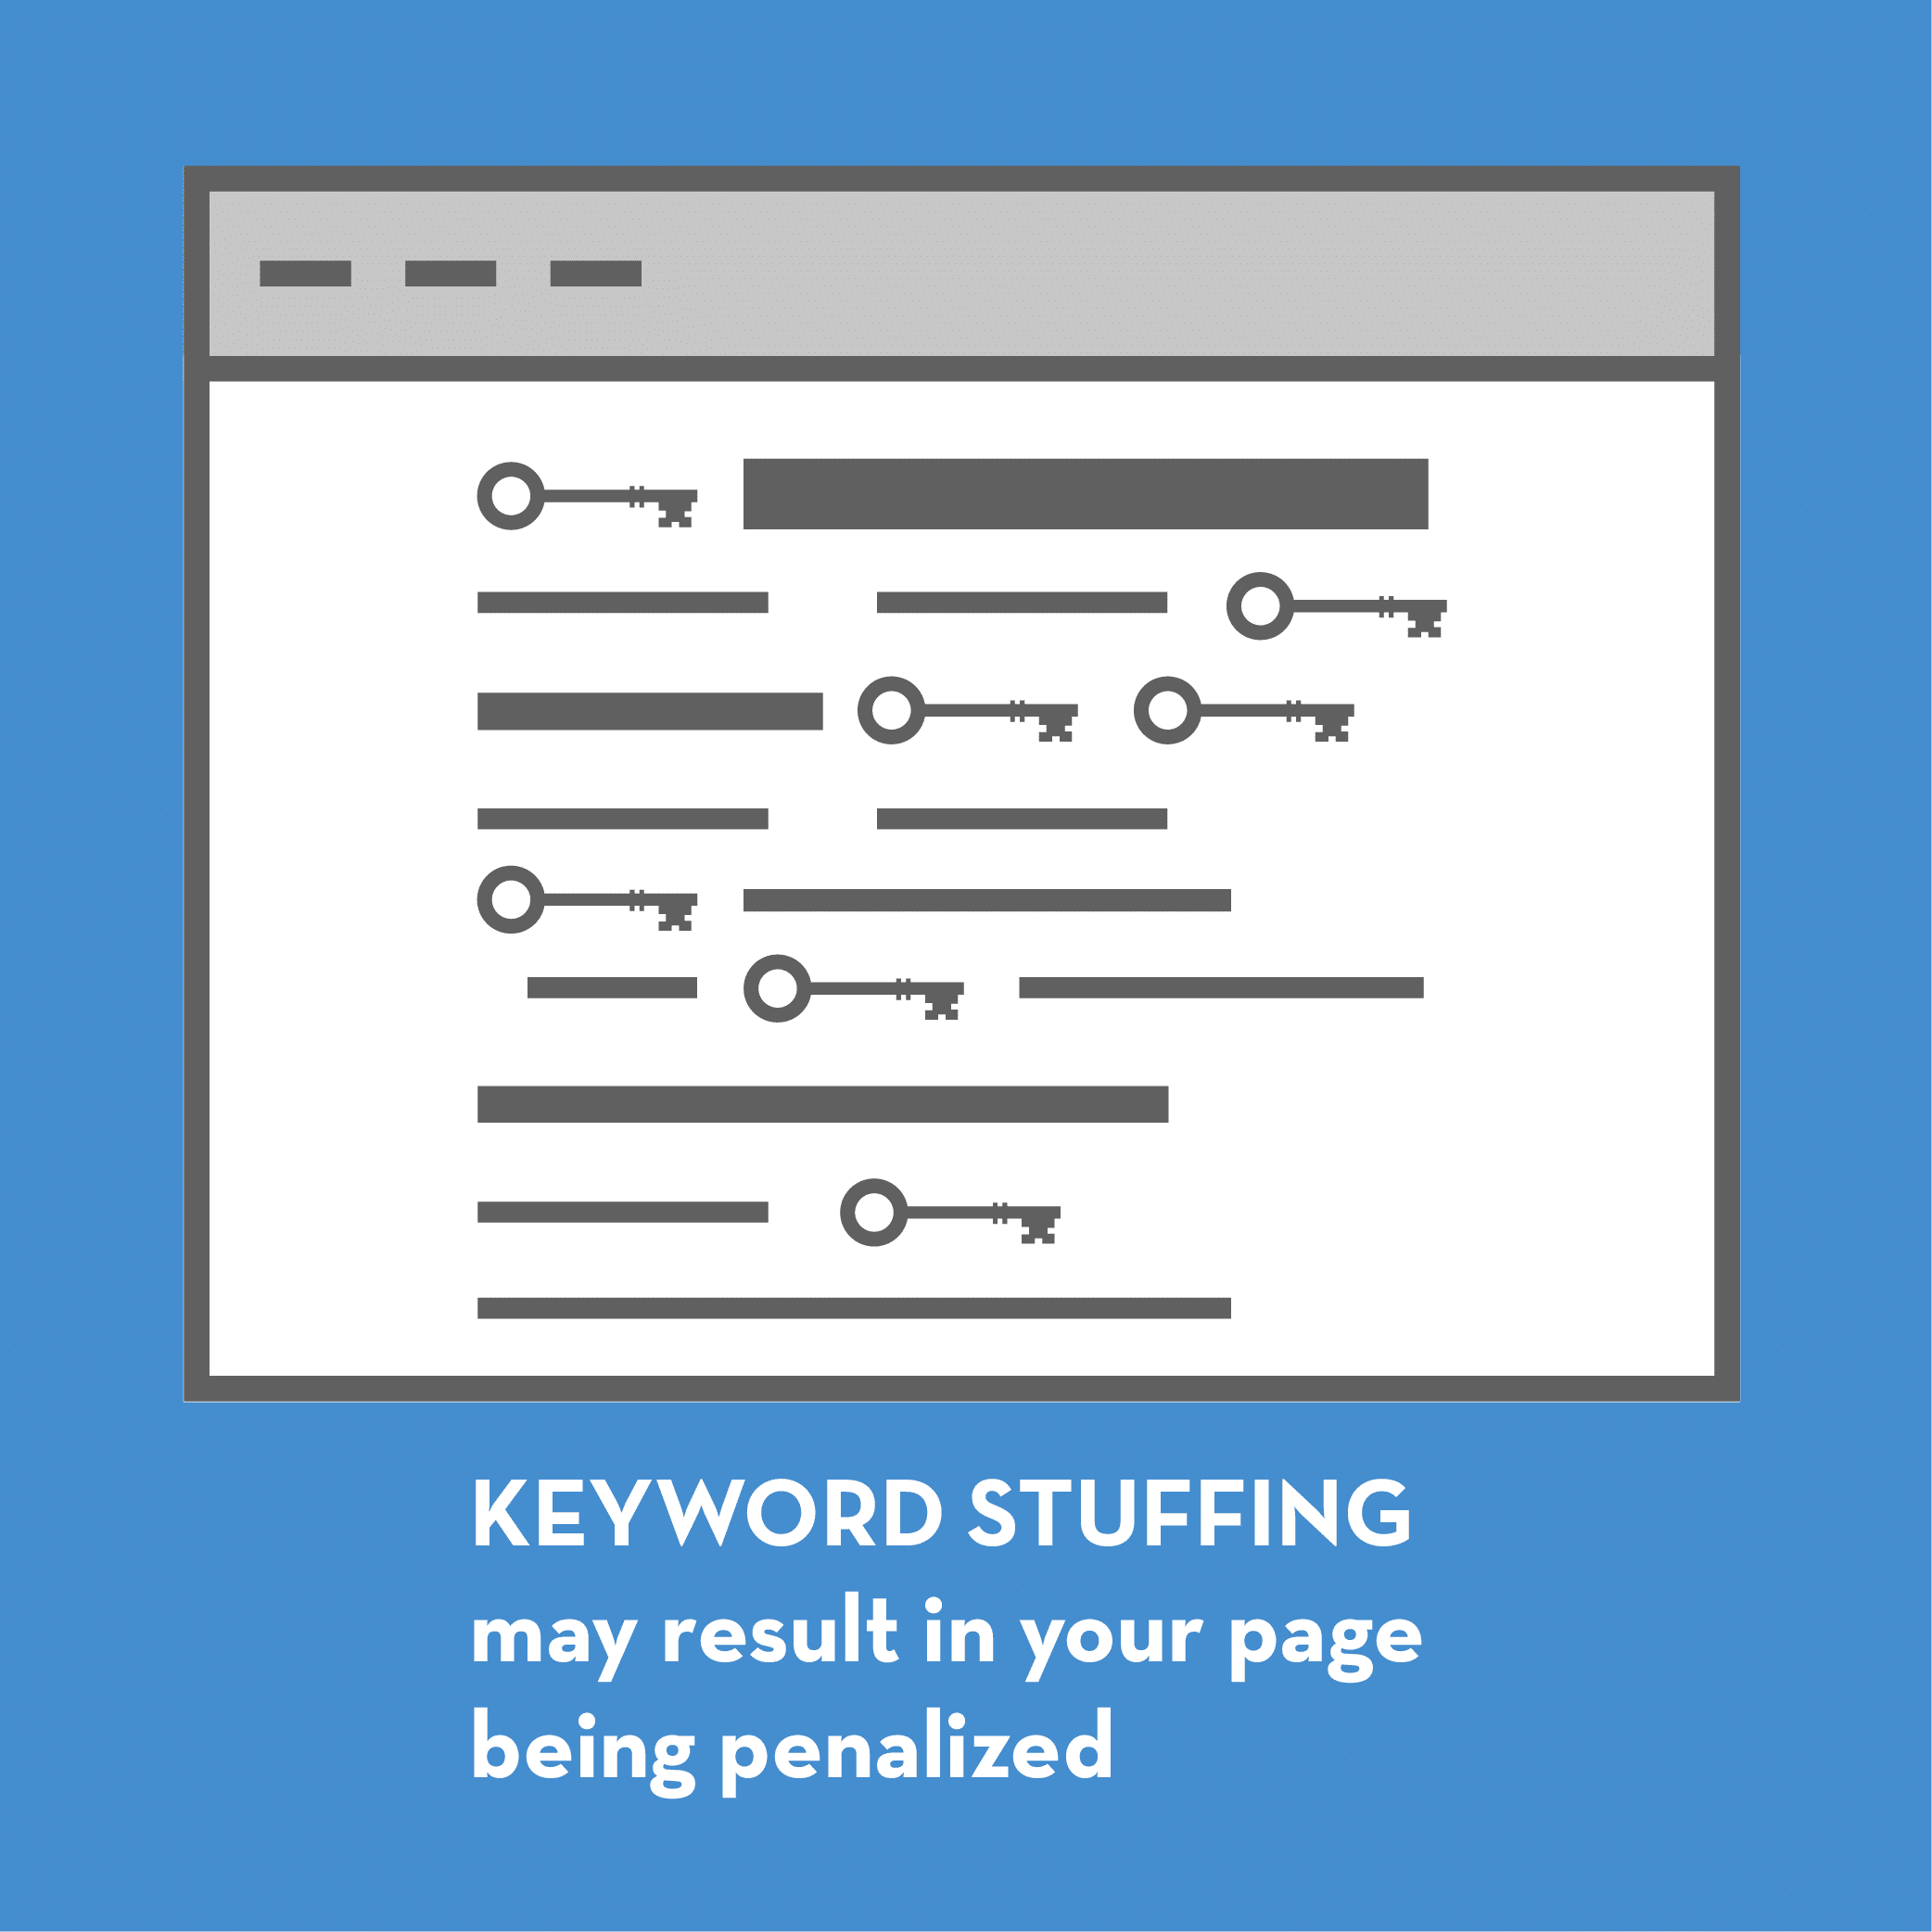 Illustration explaining the issues with keyword stuffing.